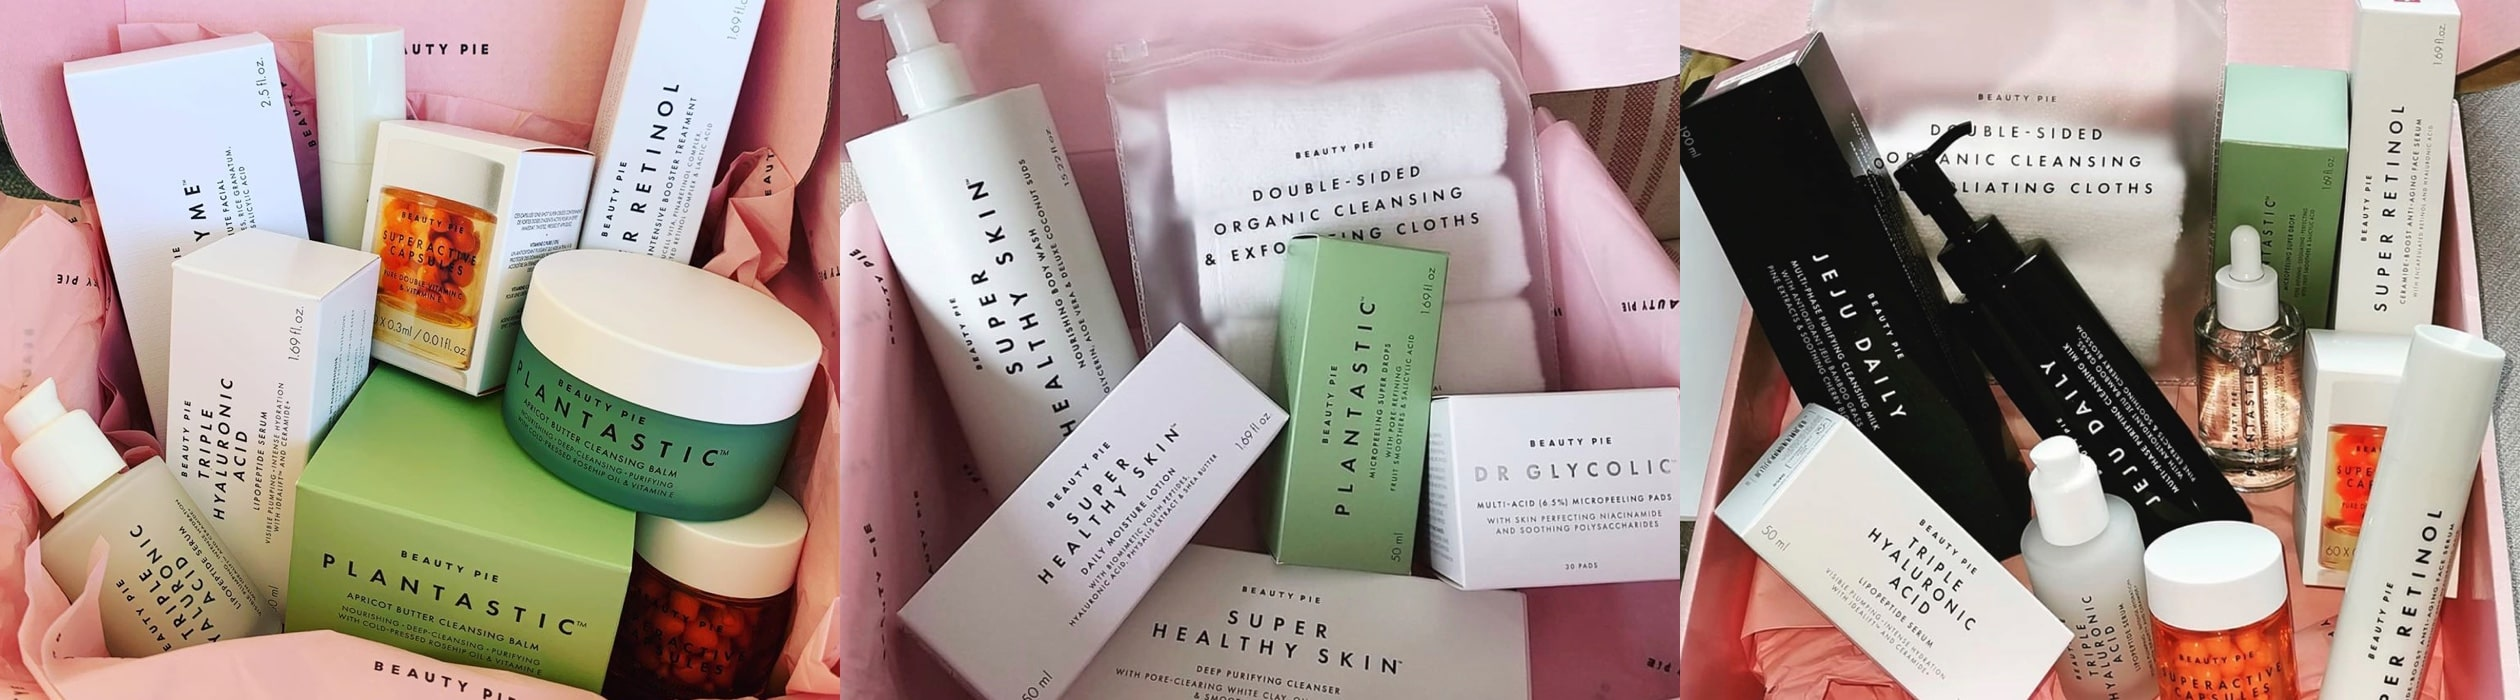 Beauty Pie Product Box